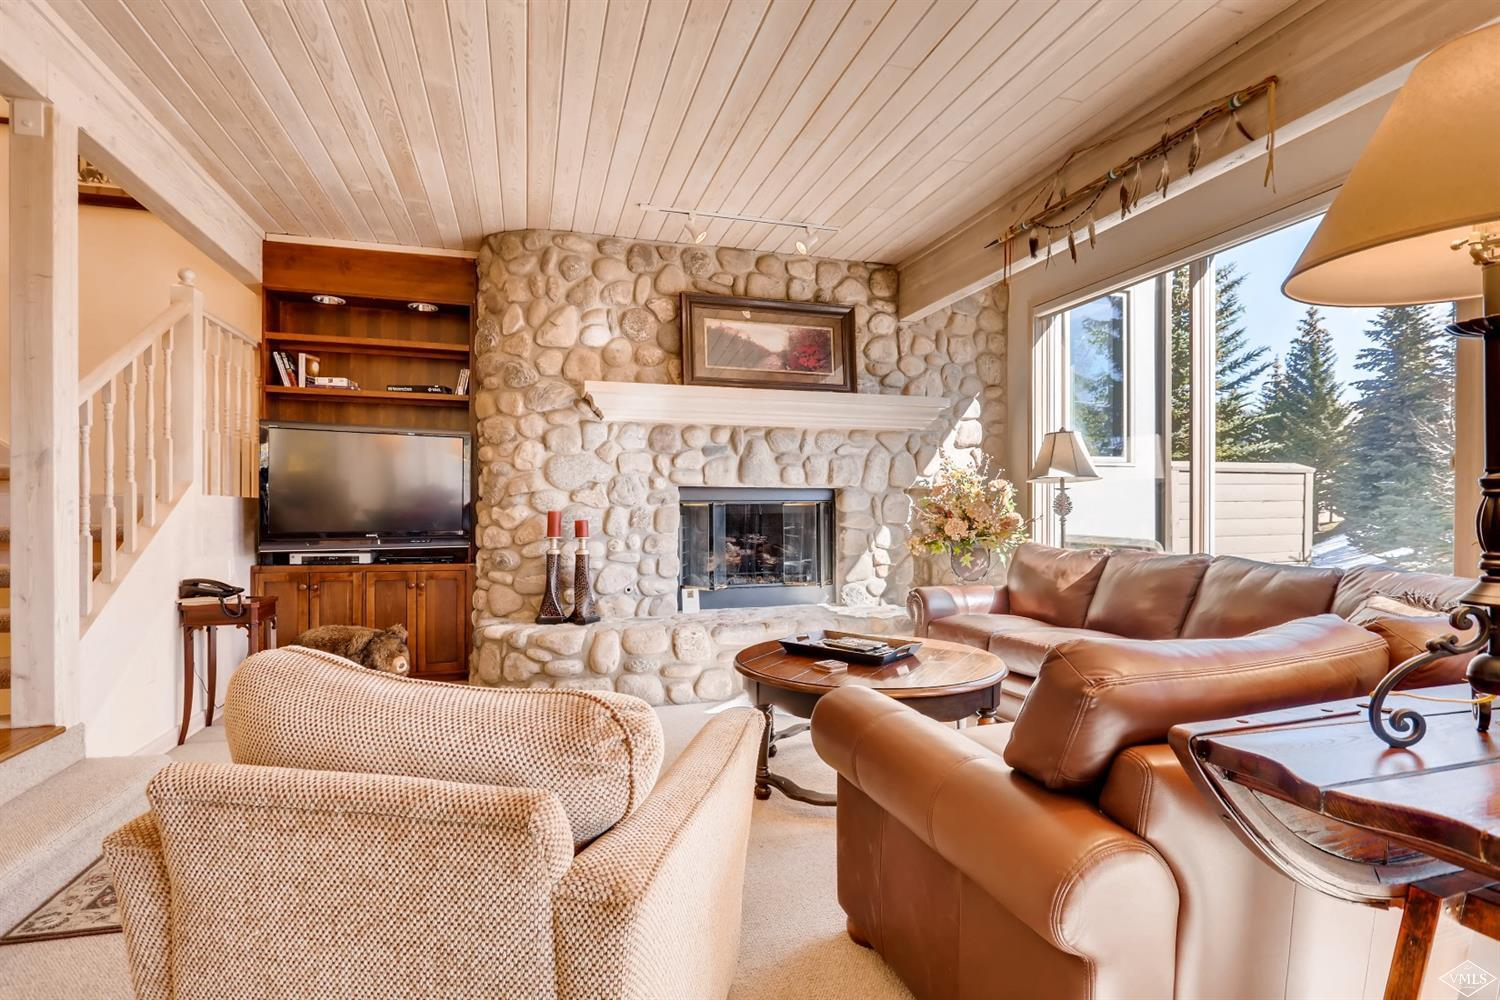 Rare end location residence with additional windows, plenty of natural light, and views. Secluded forest setting and just minutes from the Vail Village. The large kitchen and bedrooms, with a spacious multi-level floorplan make it perfect for a large family and entertaining. Inviting outdoor space with private patio and hot tub as well as an upper level balcony with mountain views.